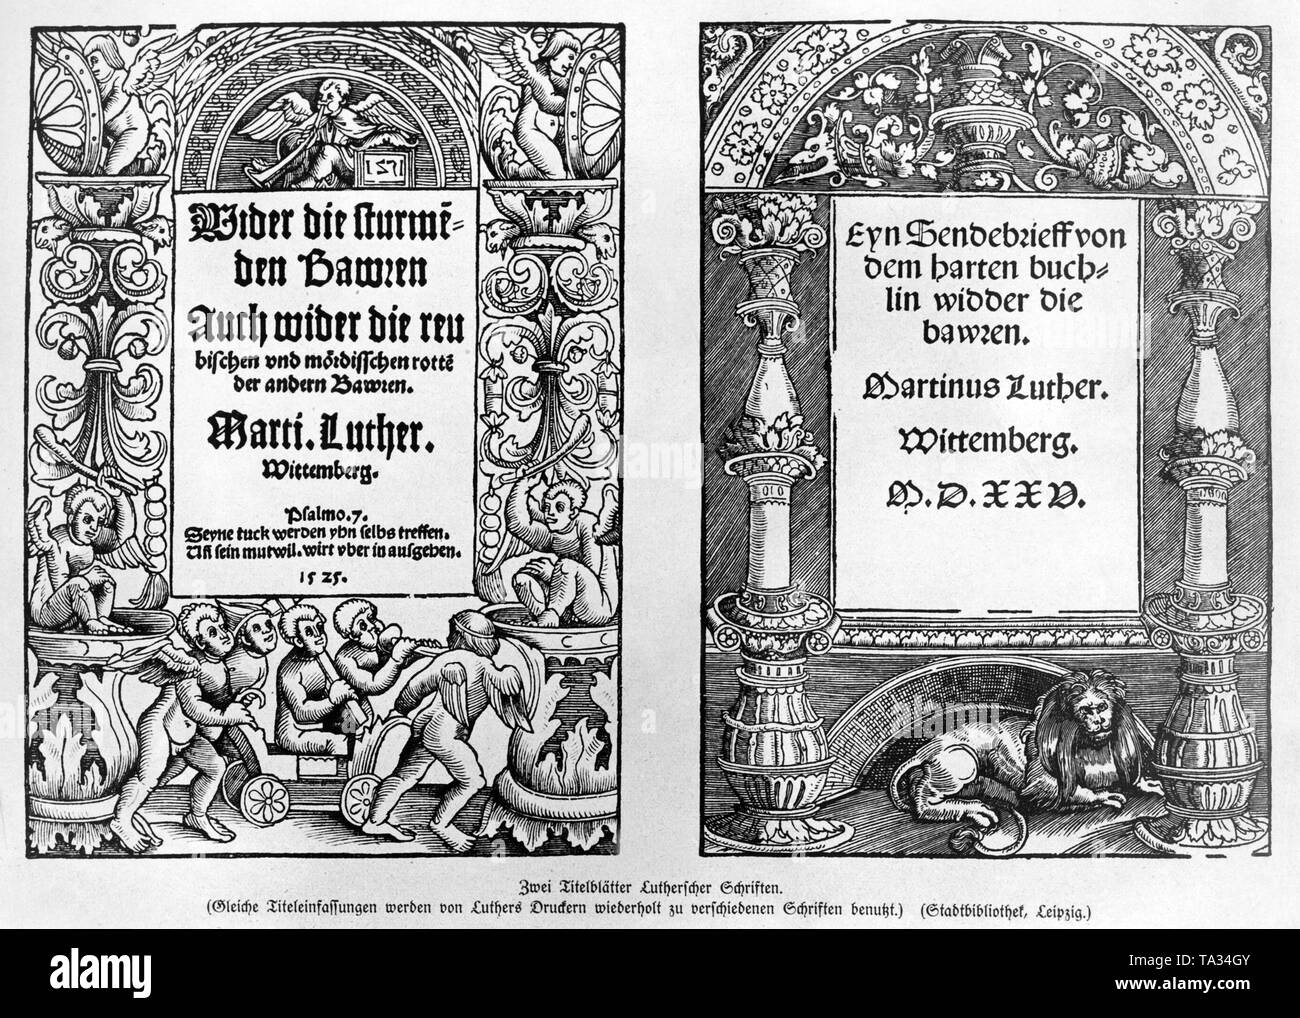 """Front pages of Luther's writings 'Against the Storming Peasants' ( 'Wider die stuermenden Bauern'), 1525, left and """"An Open Letter on the Harsh Book Against the Peasants"""" (''Ein Sendebrief von dem harten Buechlein wieder die Bauern') where Luther distanced himself from the German Peasants' War, which was decisively justified by the principles of the Reformation. - Stock Image"""